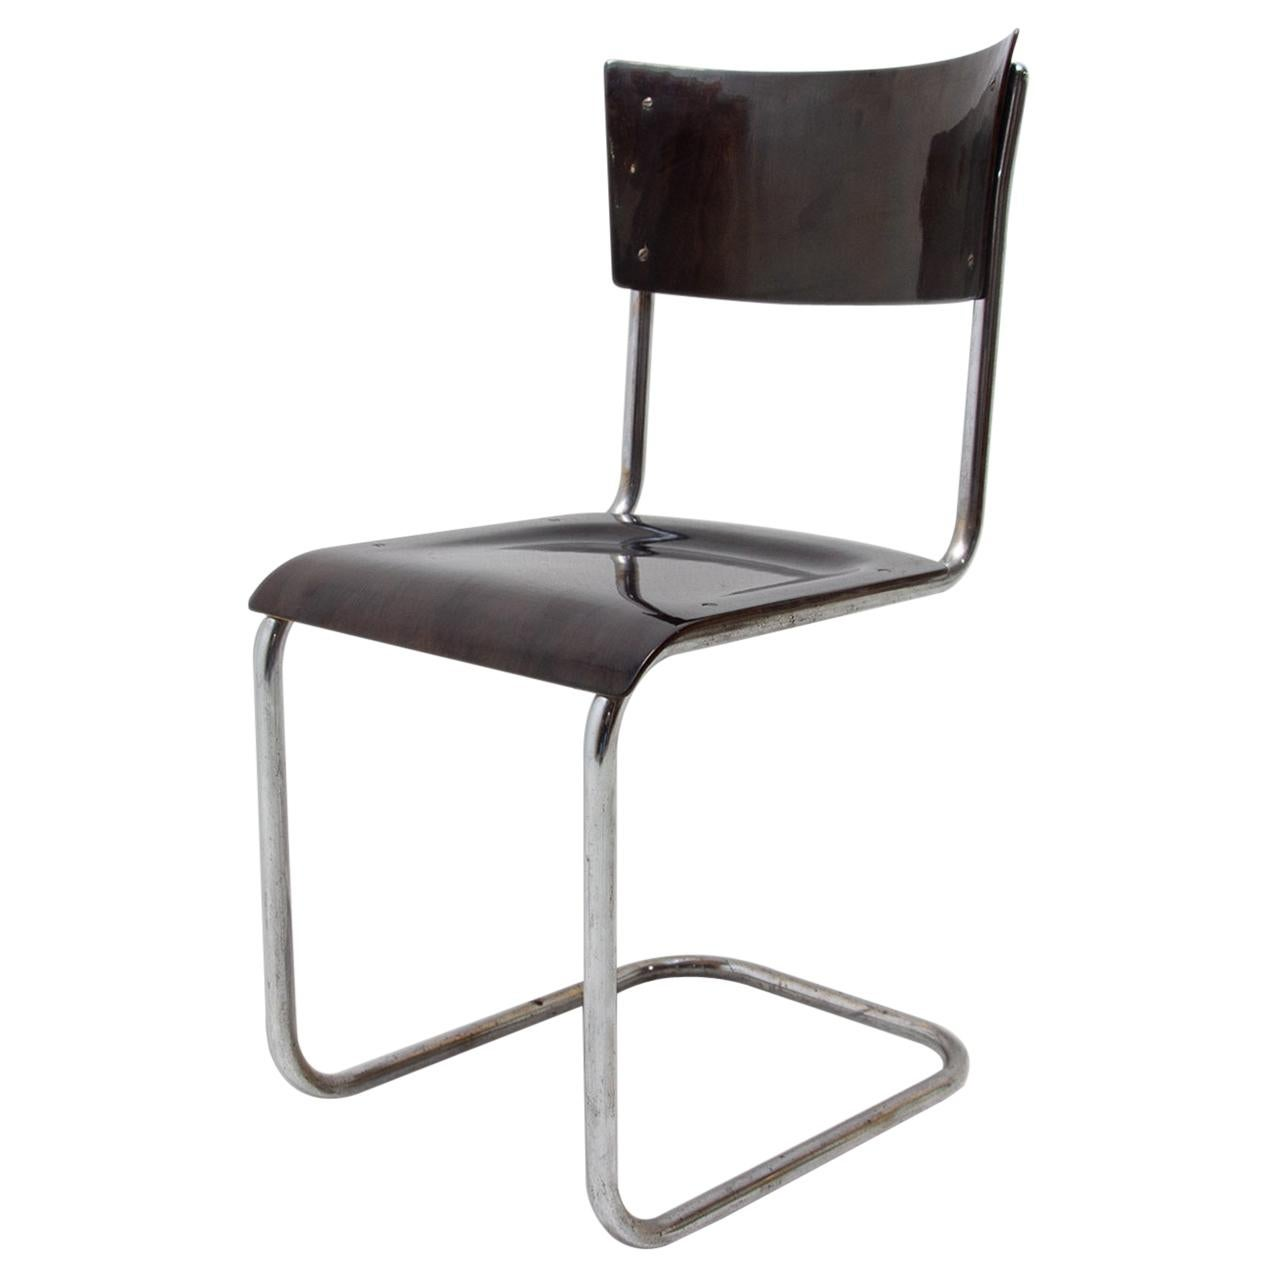 Bauhaus Chair S43 by Mart Stam, 1930´s